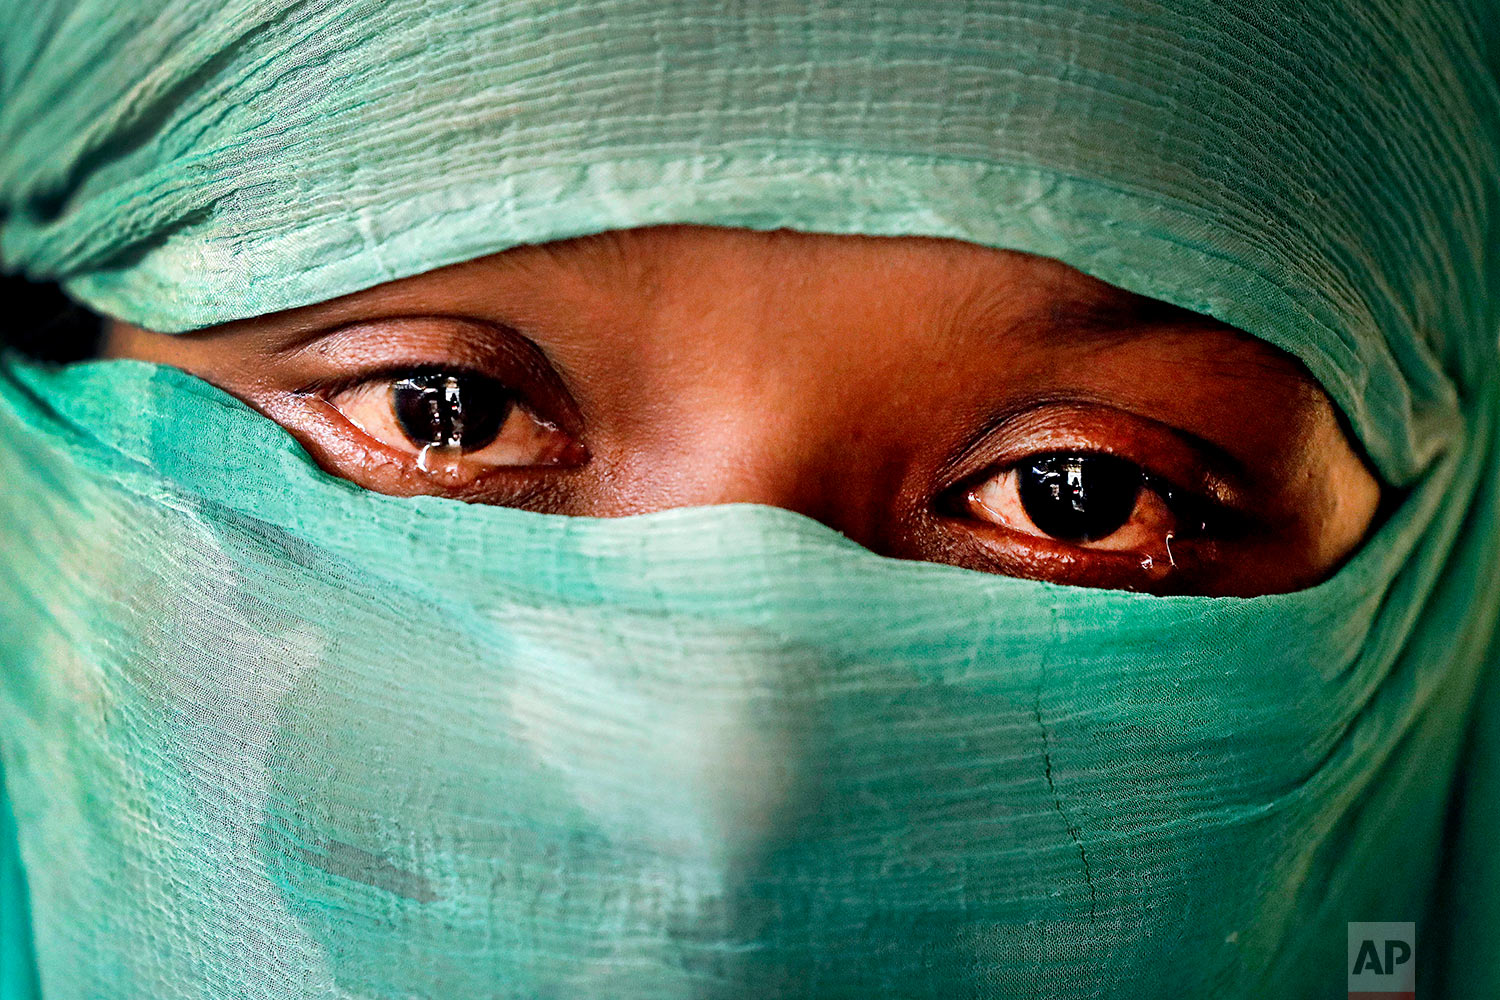 In this Wednesday, Nov. 22, 2017, photo, F, 22, who says she was raped by members of Myanmar's armed forces in June and again in September, is photographed in her tent in Kutupalong refugee camp in Bangladesh.(AP Photo/Wong Maye-E)